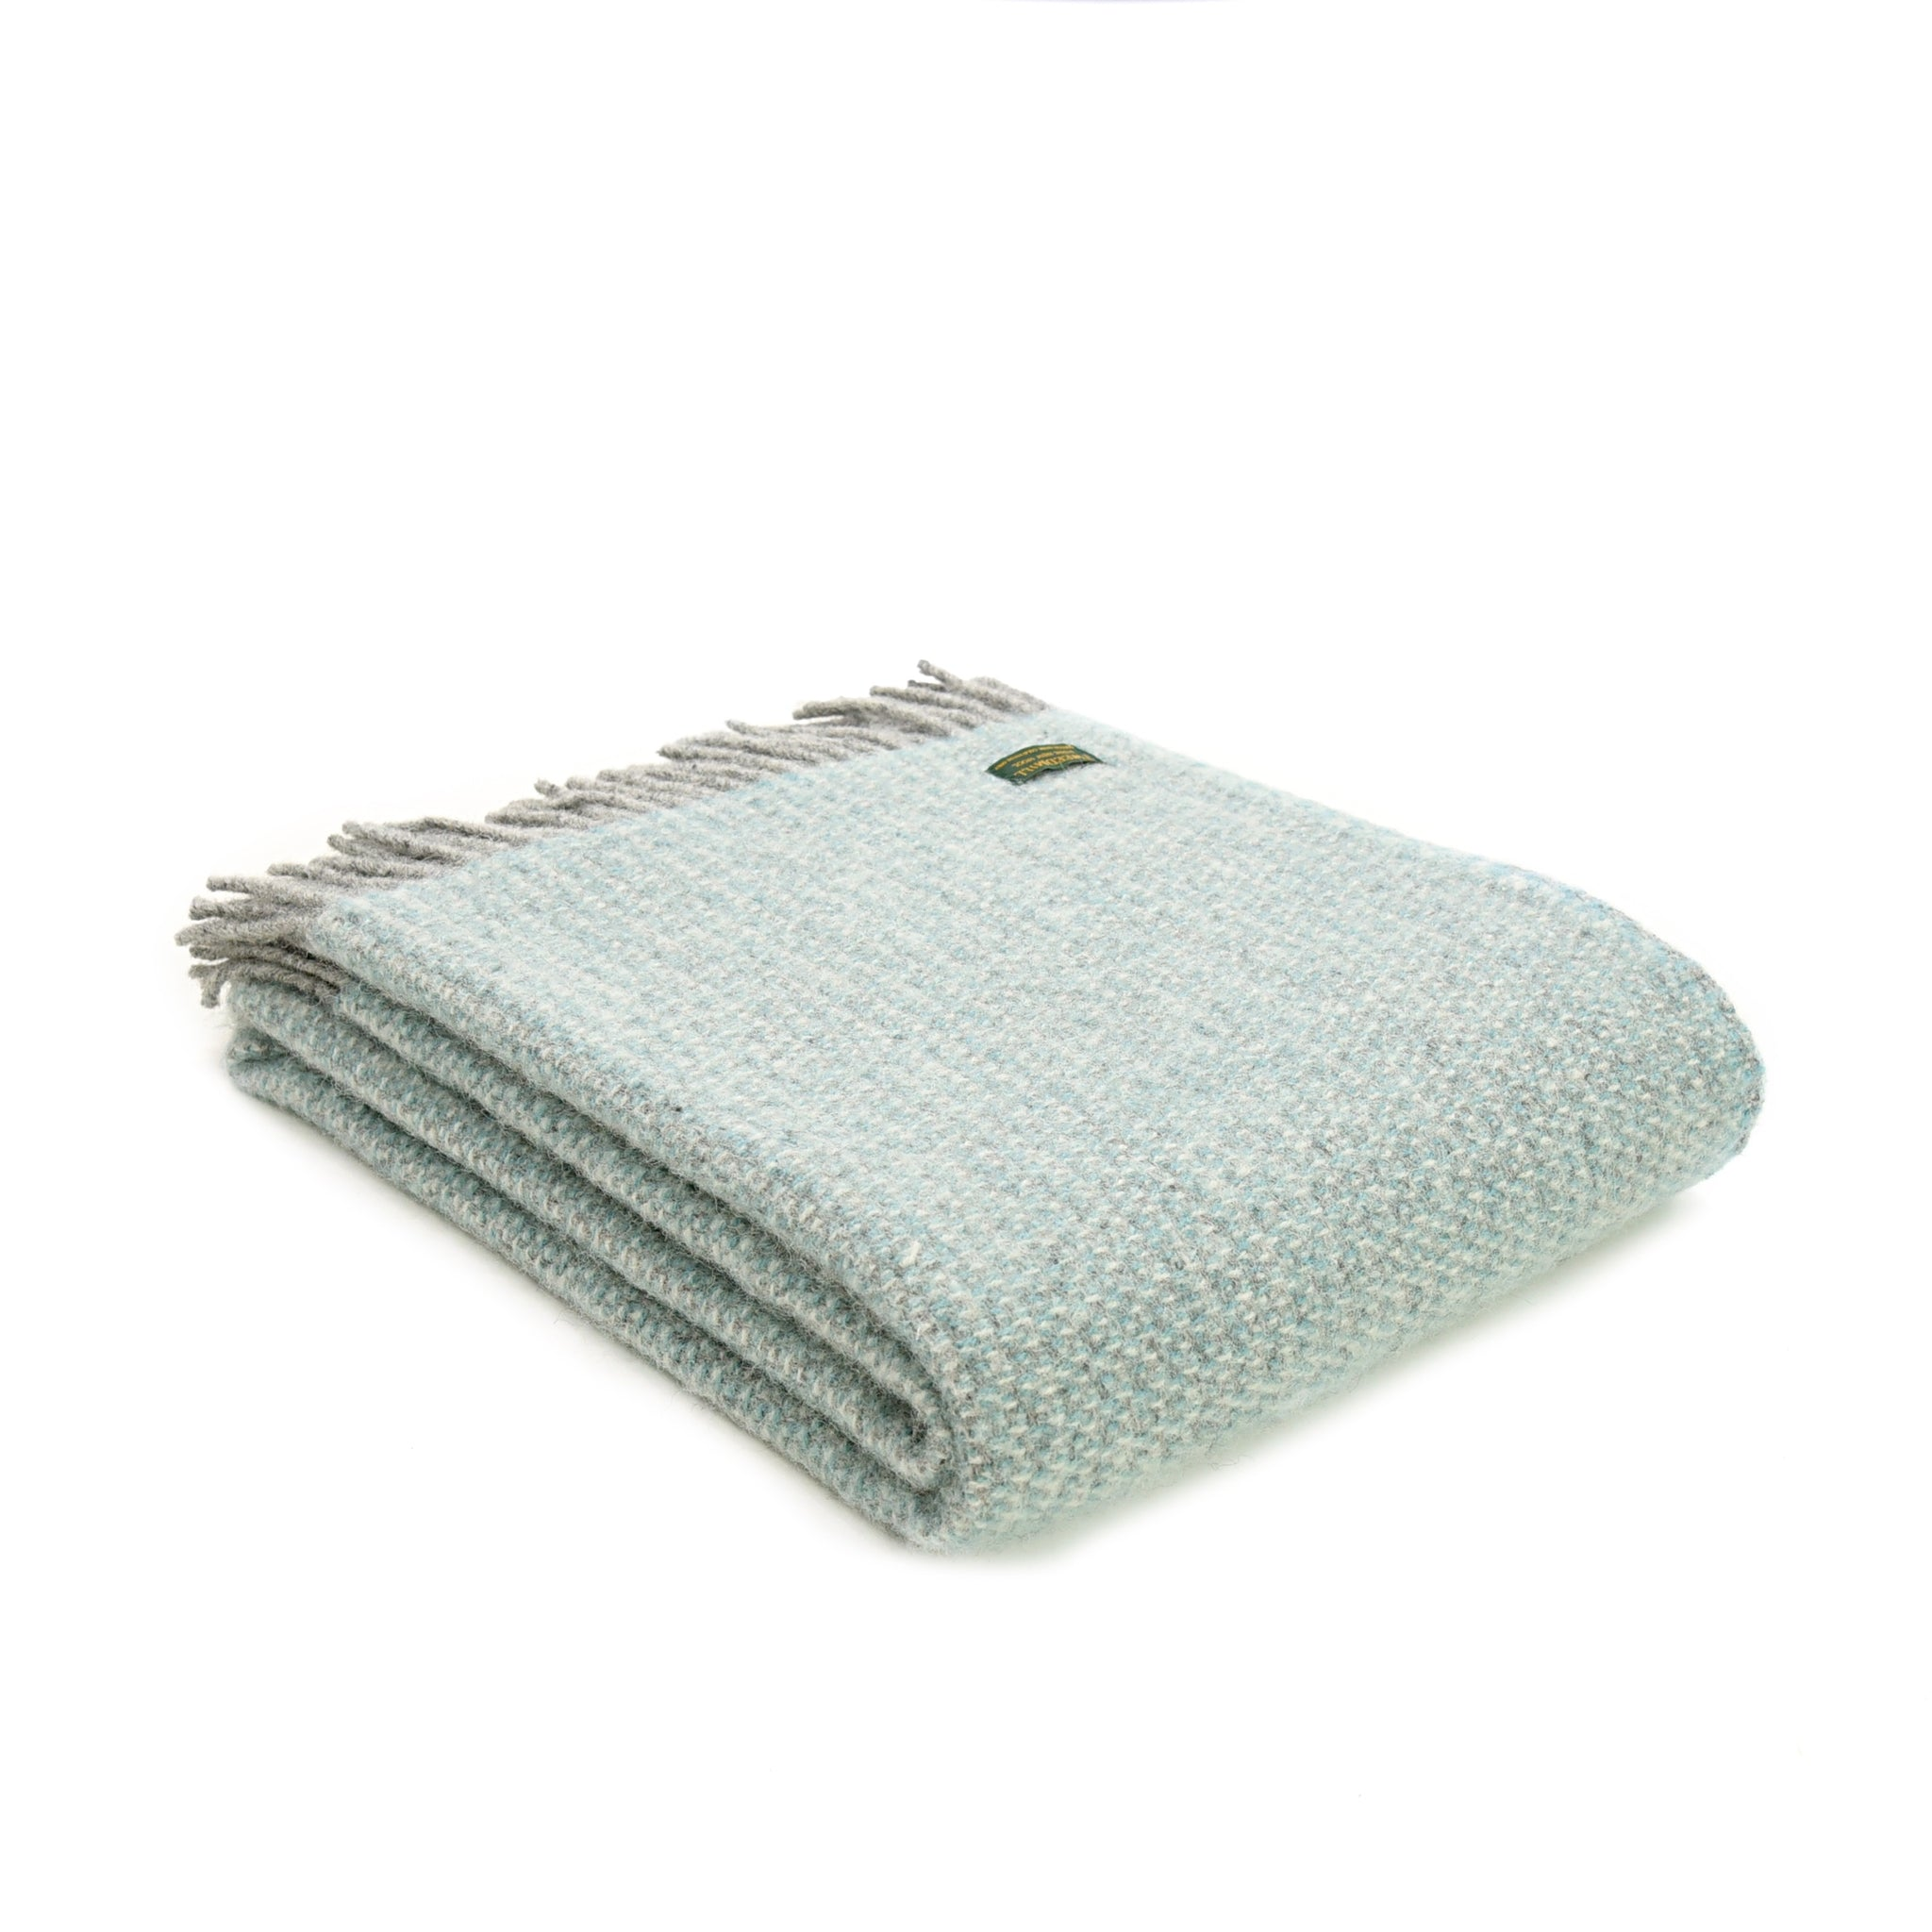 Tweedmill Illusion Spearmint with Grey Wool Blanket Throw